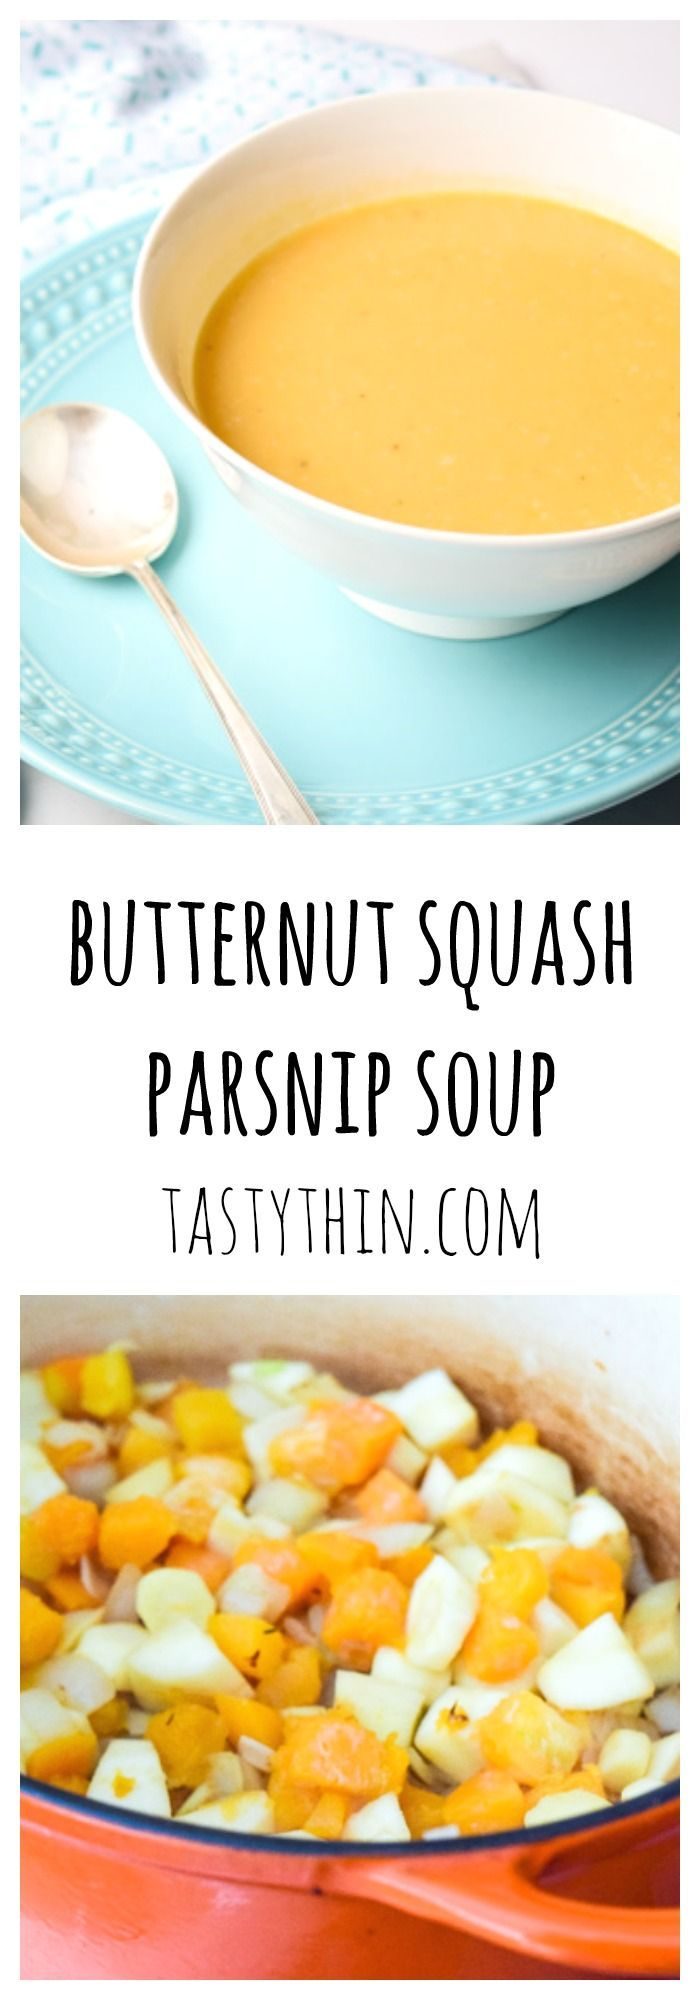 Butternut Squash and Parsnip Soup - a five ingredient recipe full of flavor and so healthy! Perfect for Paleo and Whole30 diets. | http://tastythin.com